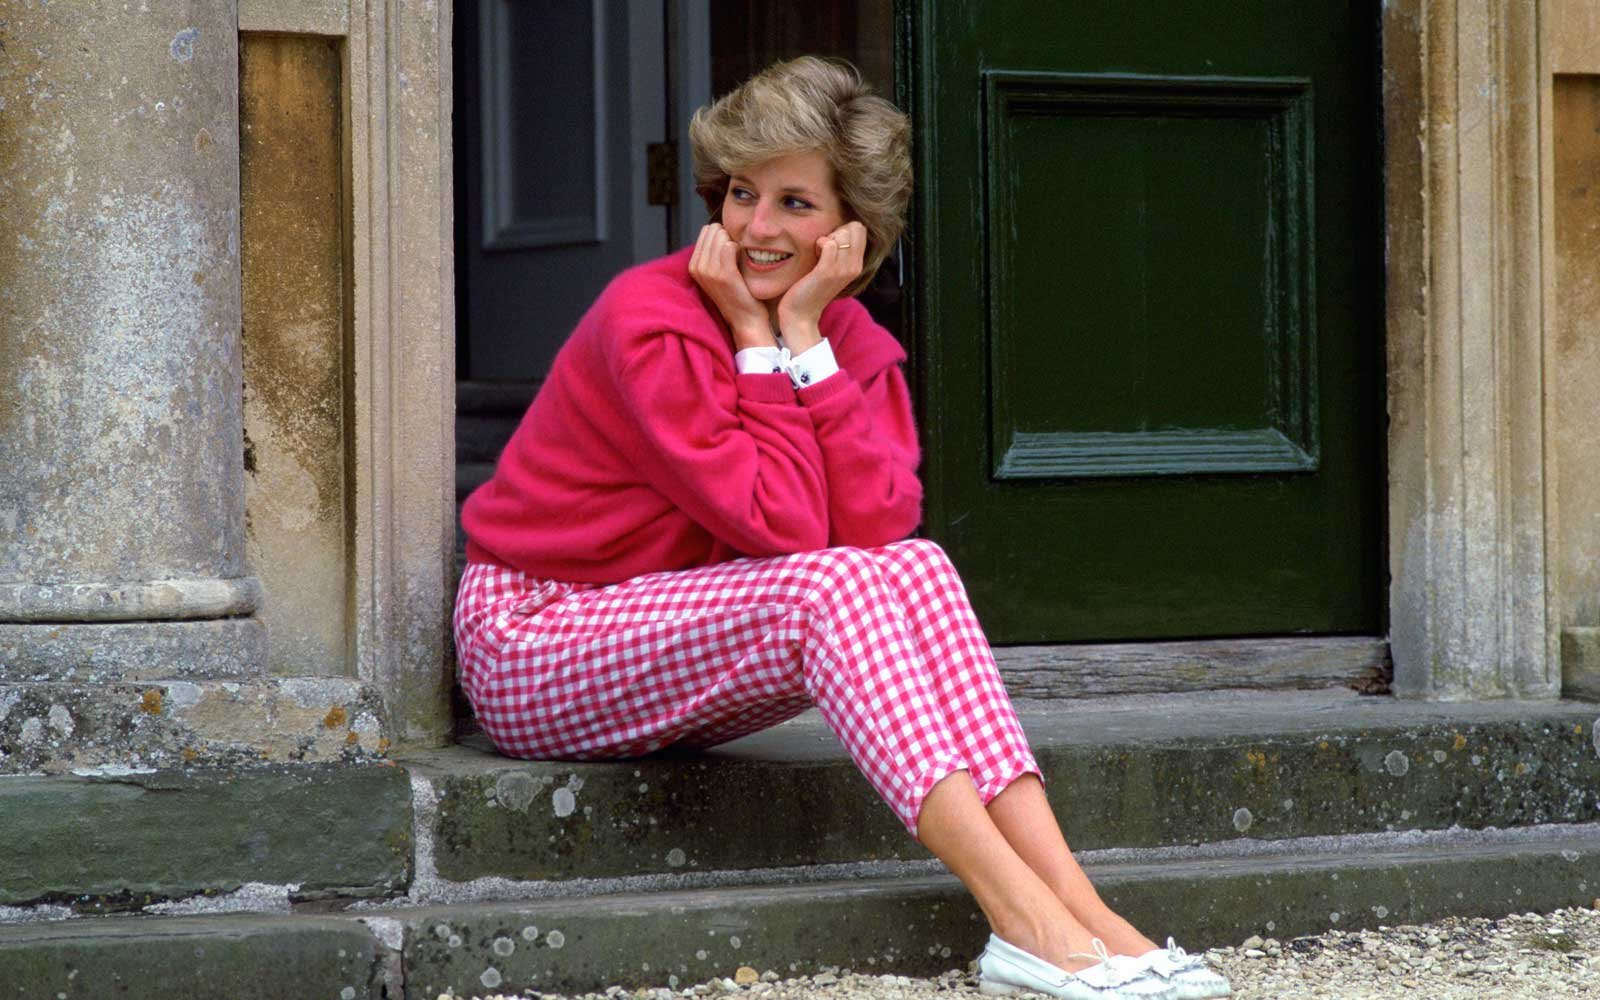 Princess Diana at Highgrove country house